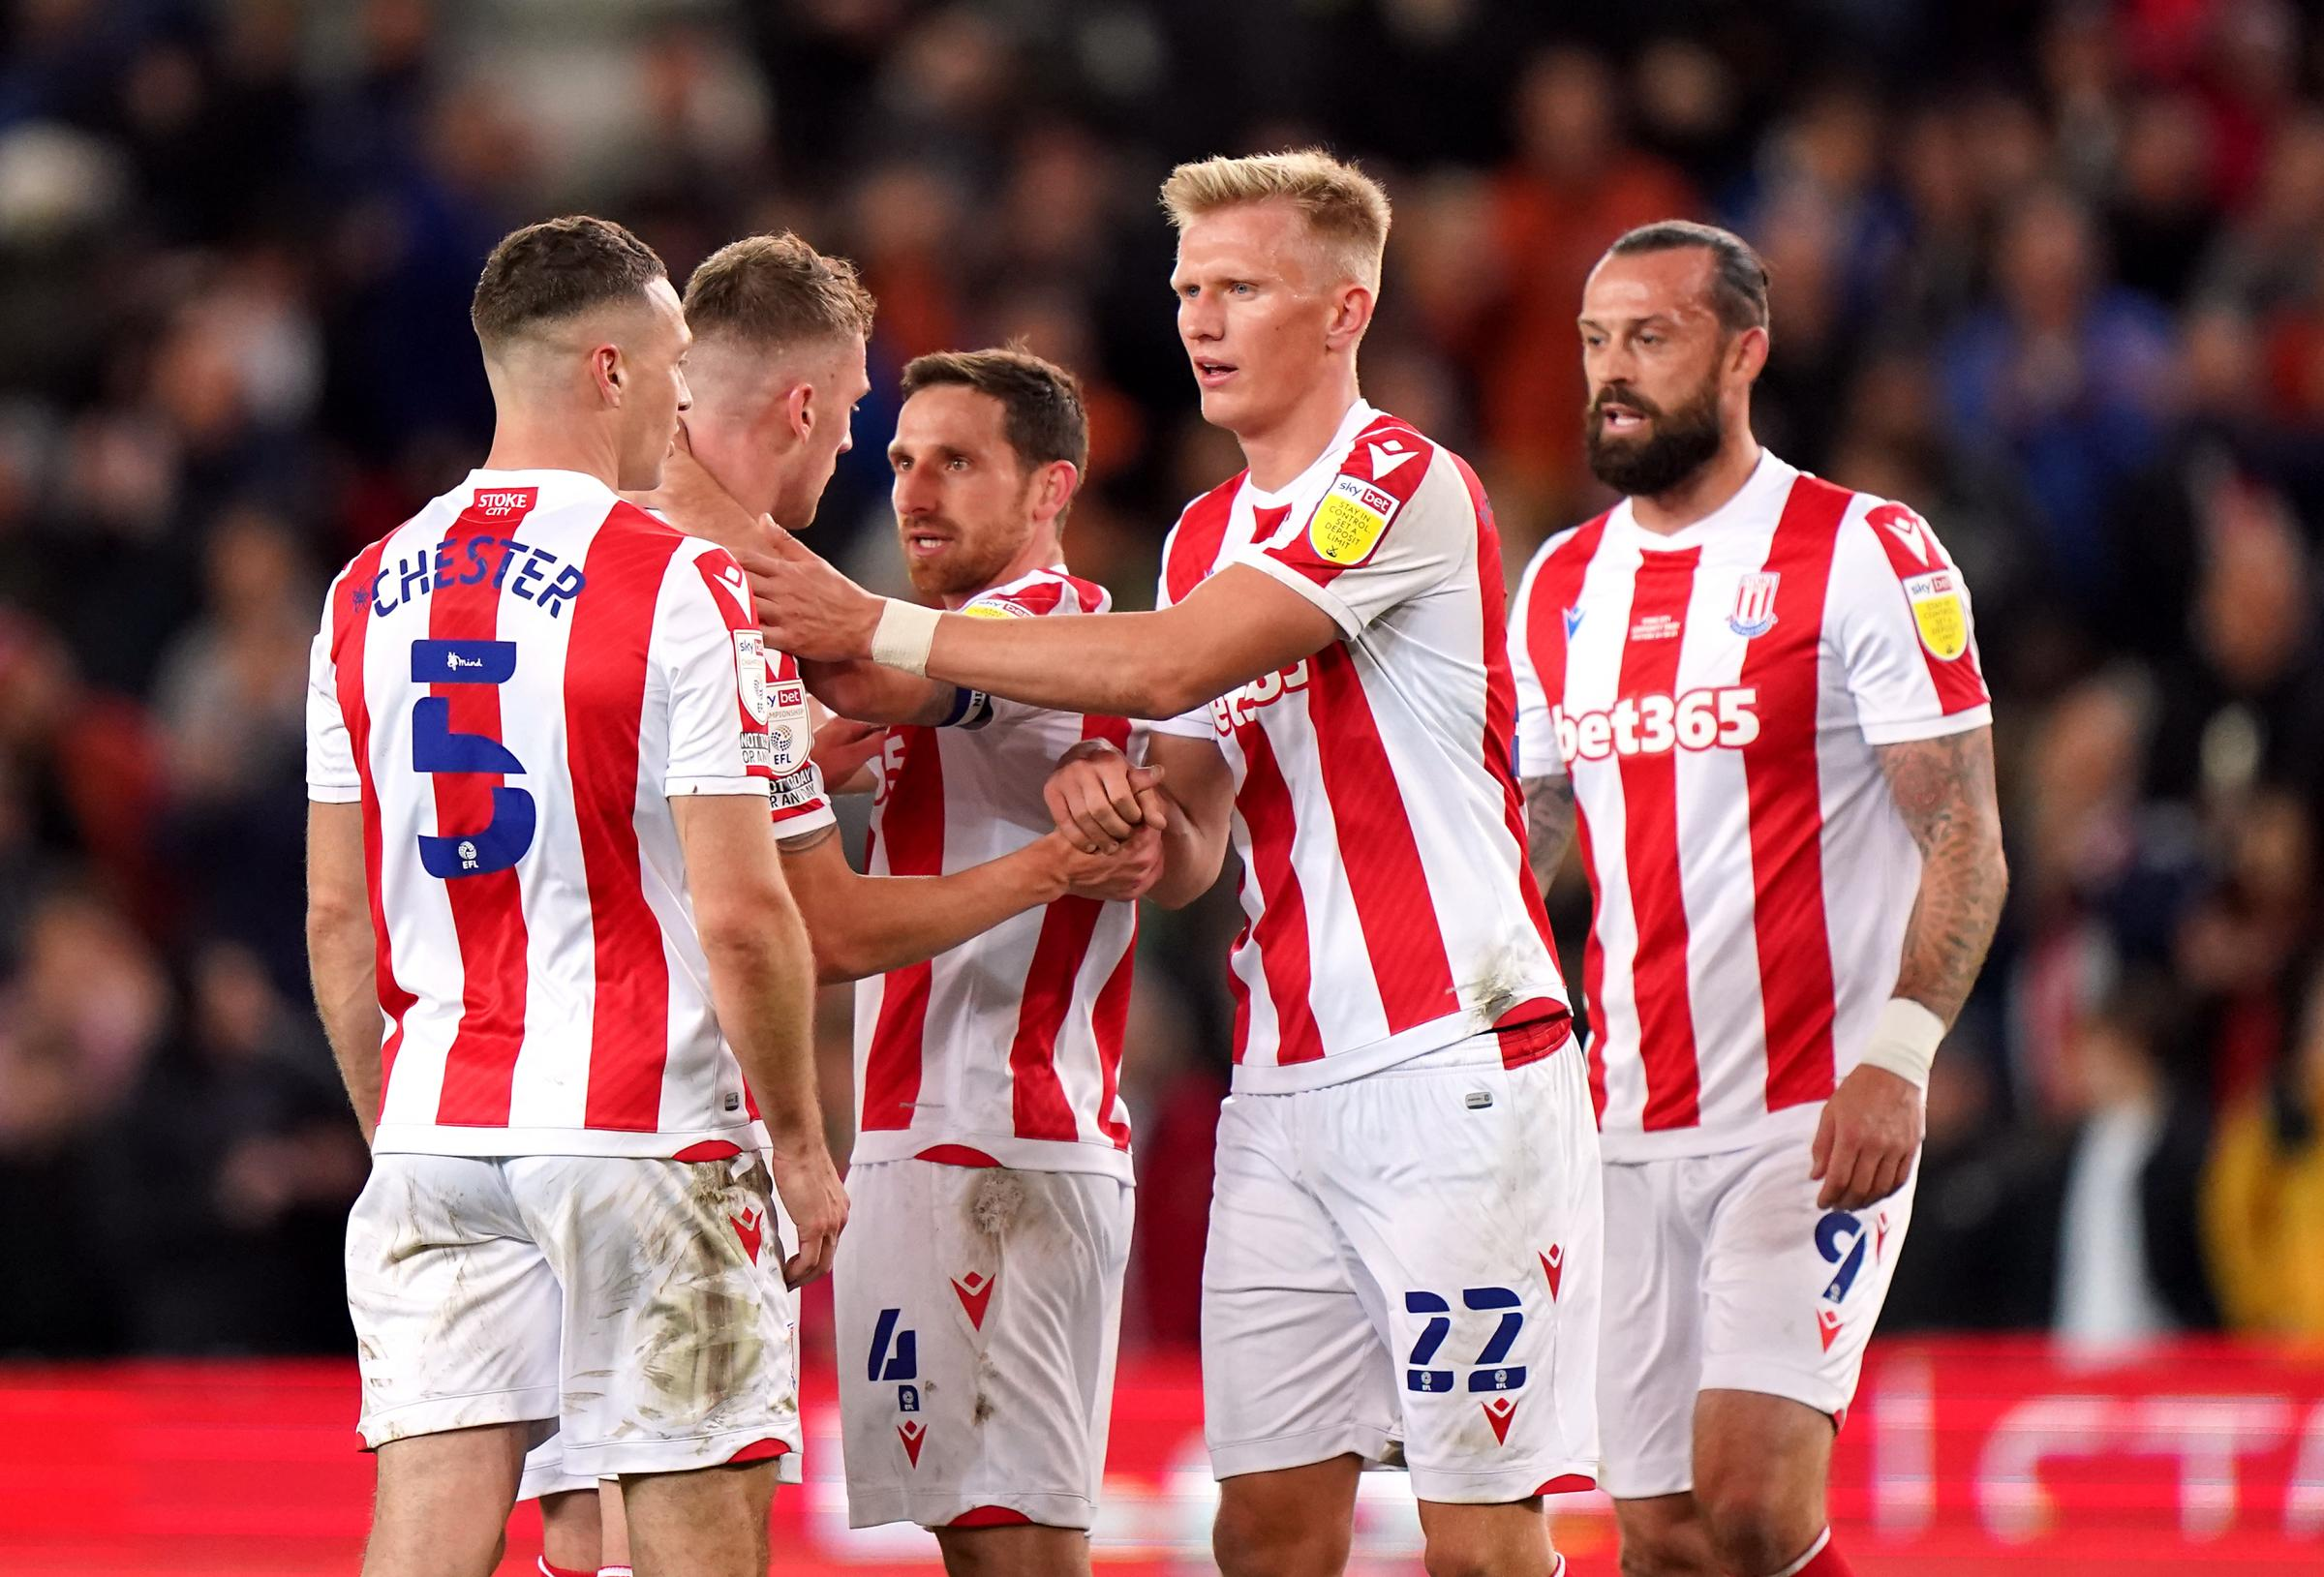 AFC Bournemouth potentially face Sam Surridge with Stoke